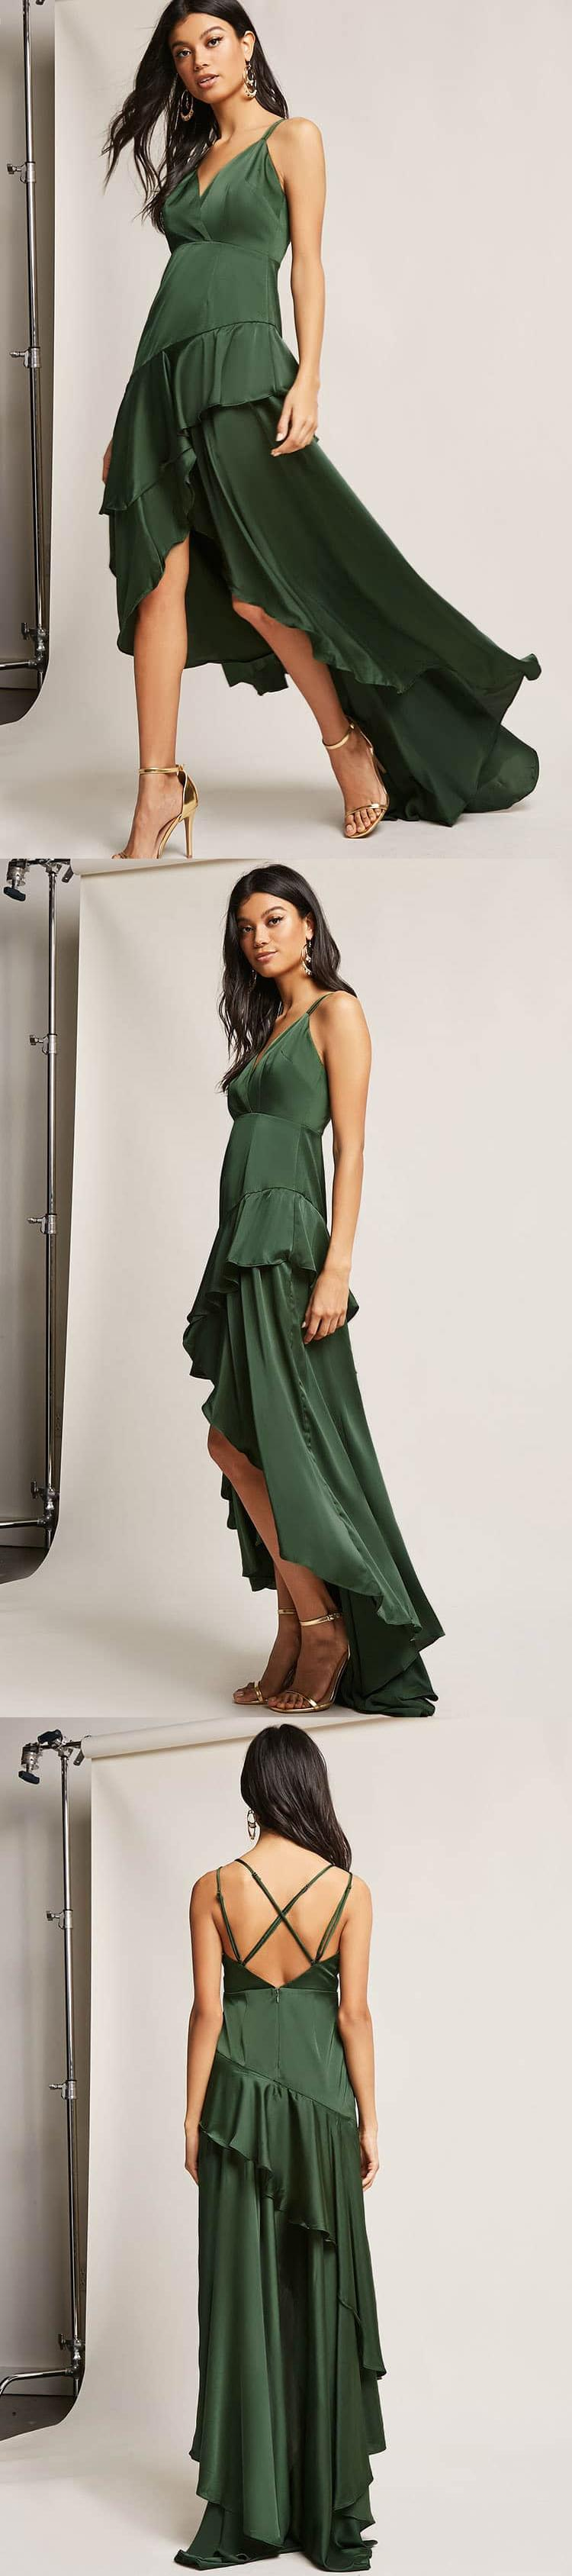 Ruffle highlow maxi dress usd forever new forever